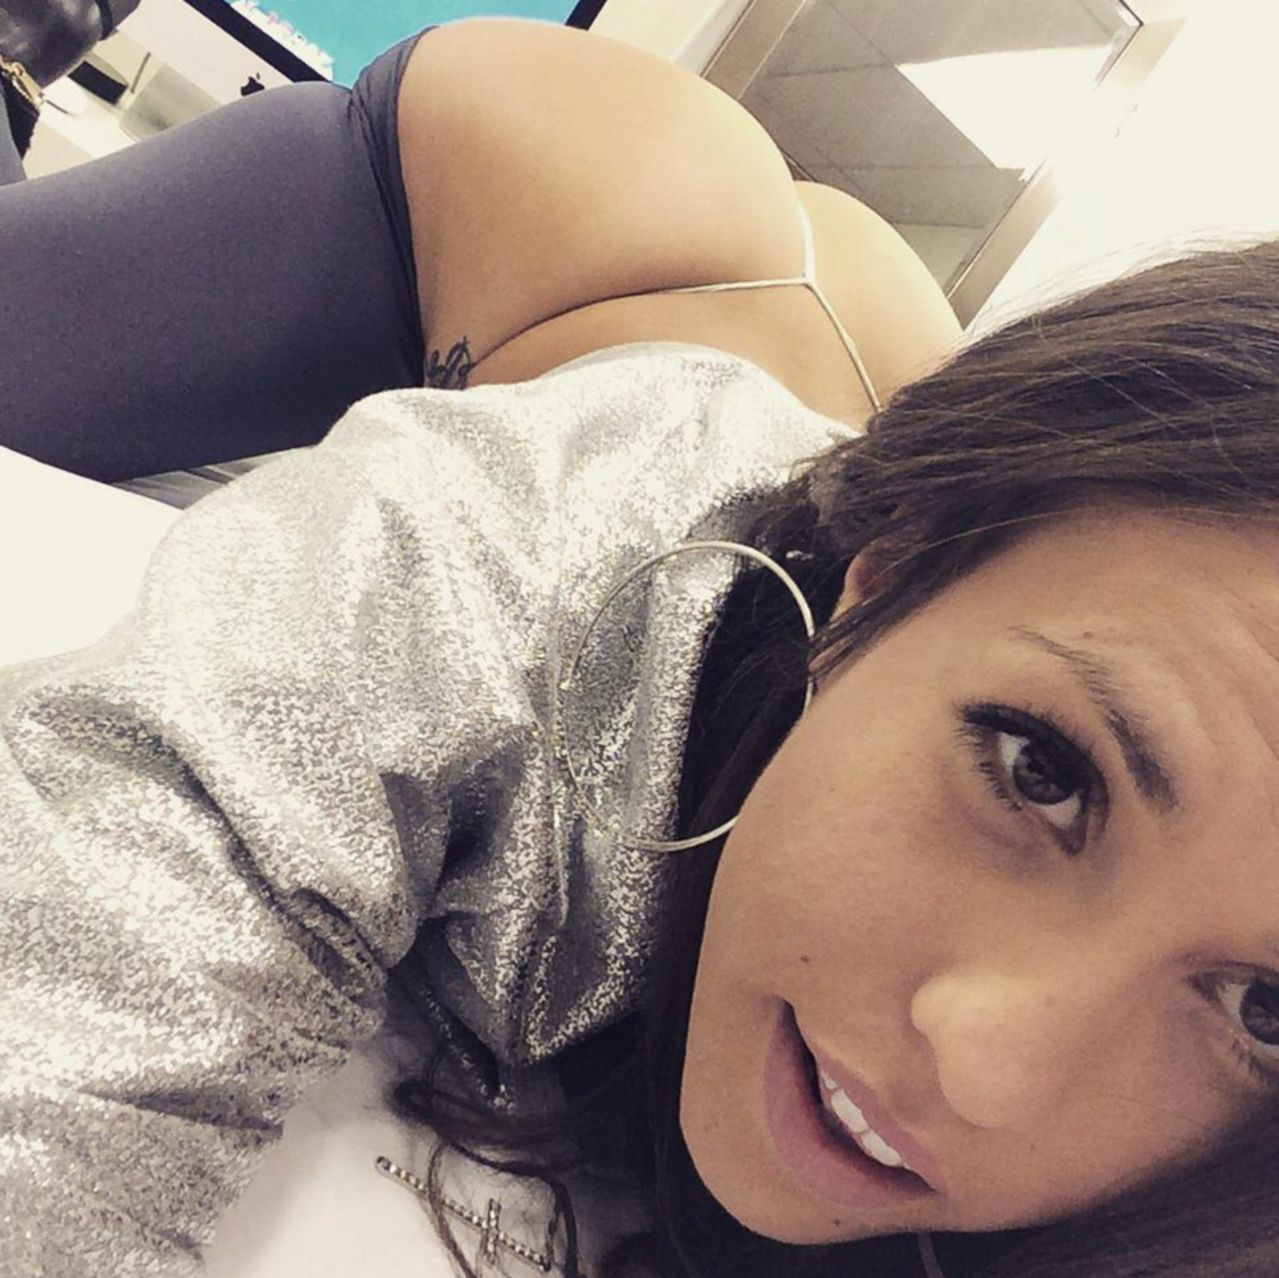 tight ass fucking pics and hot sexy asses porn